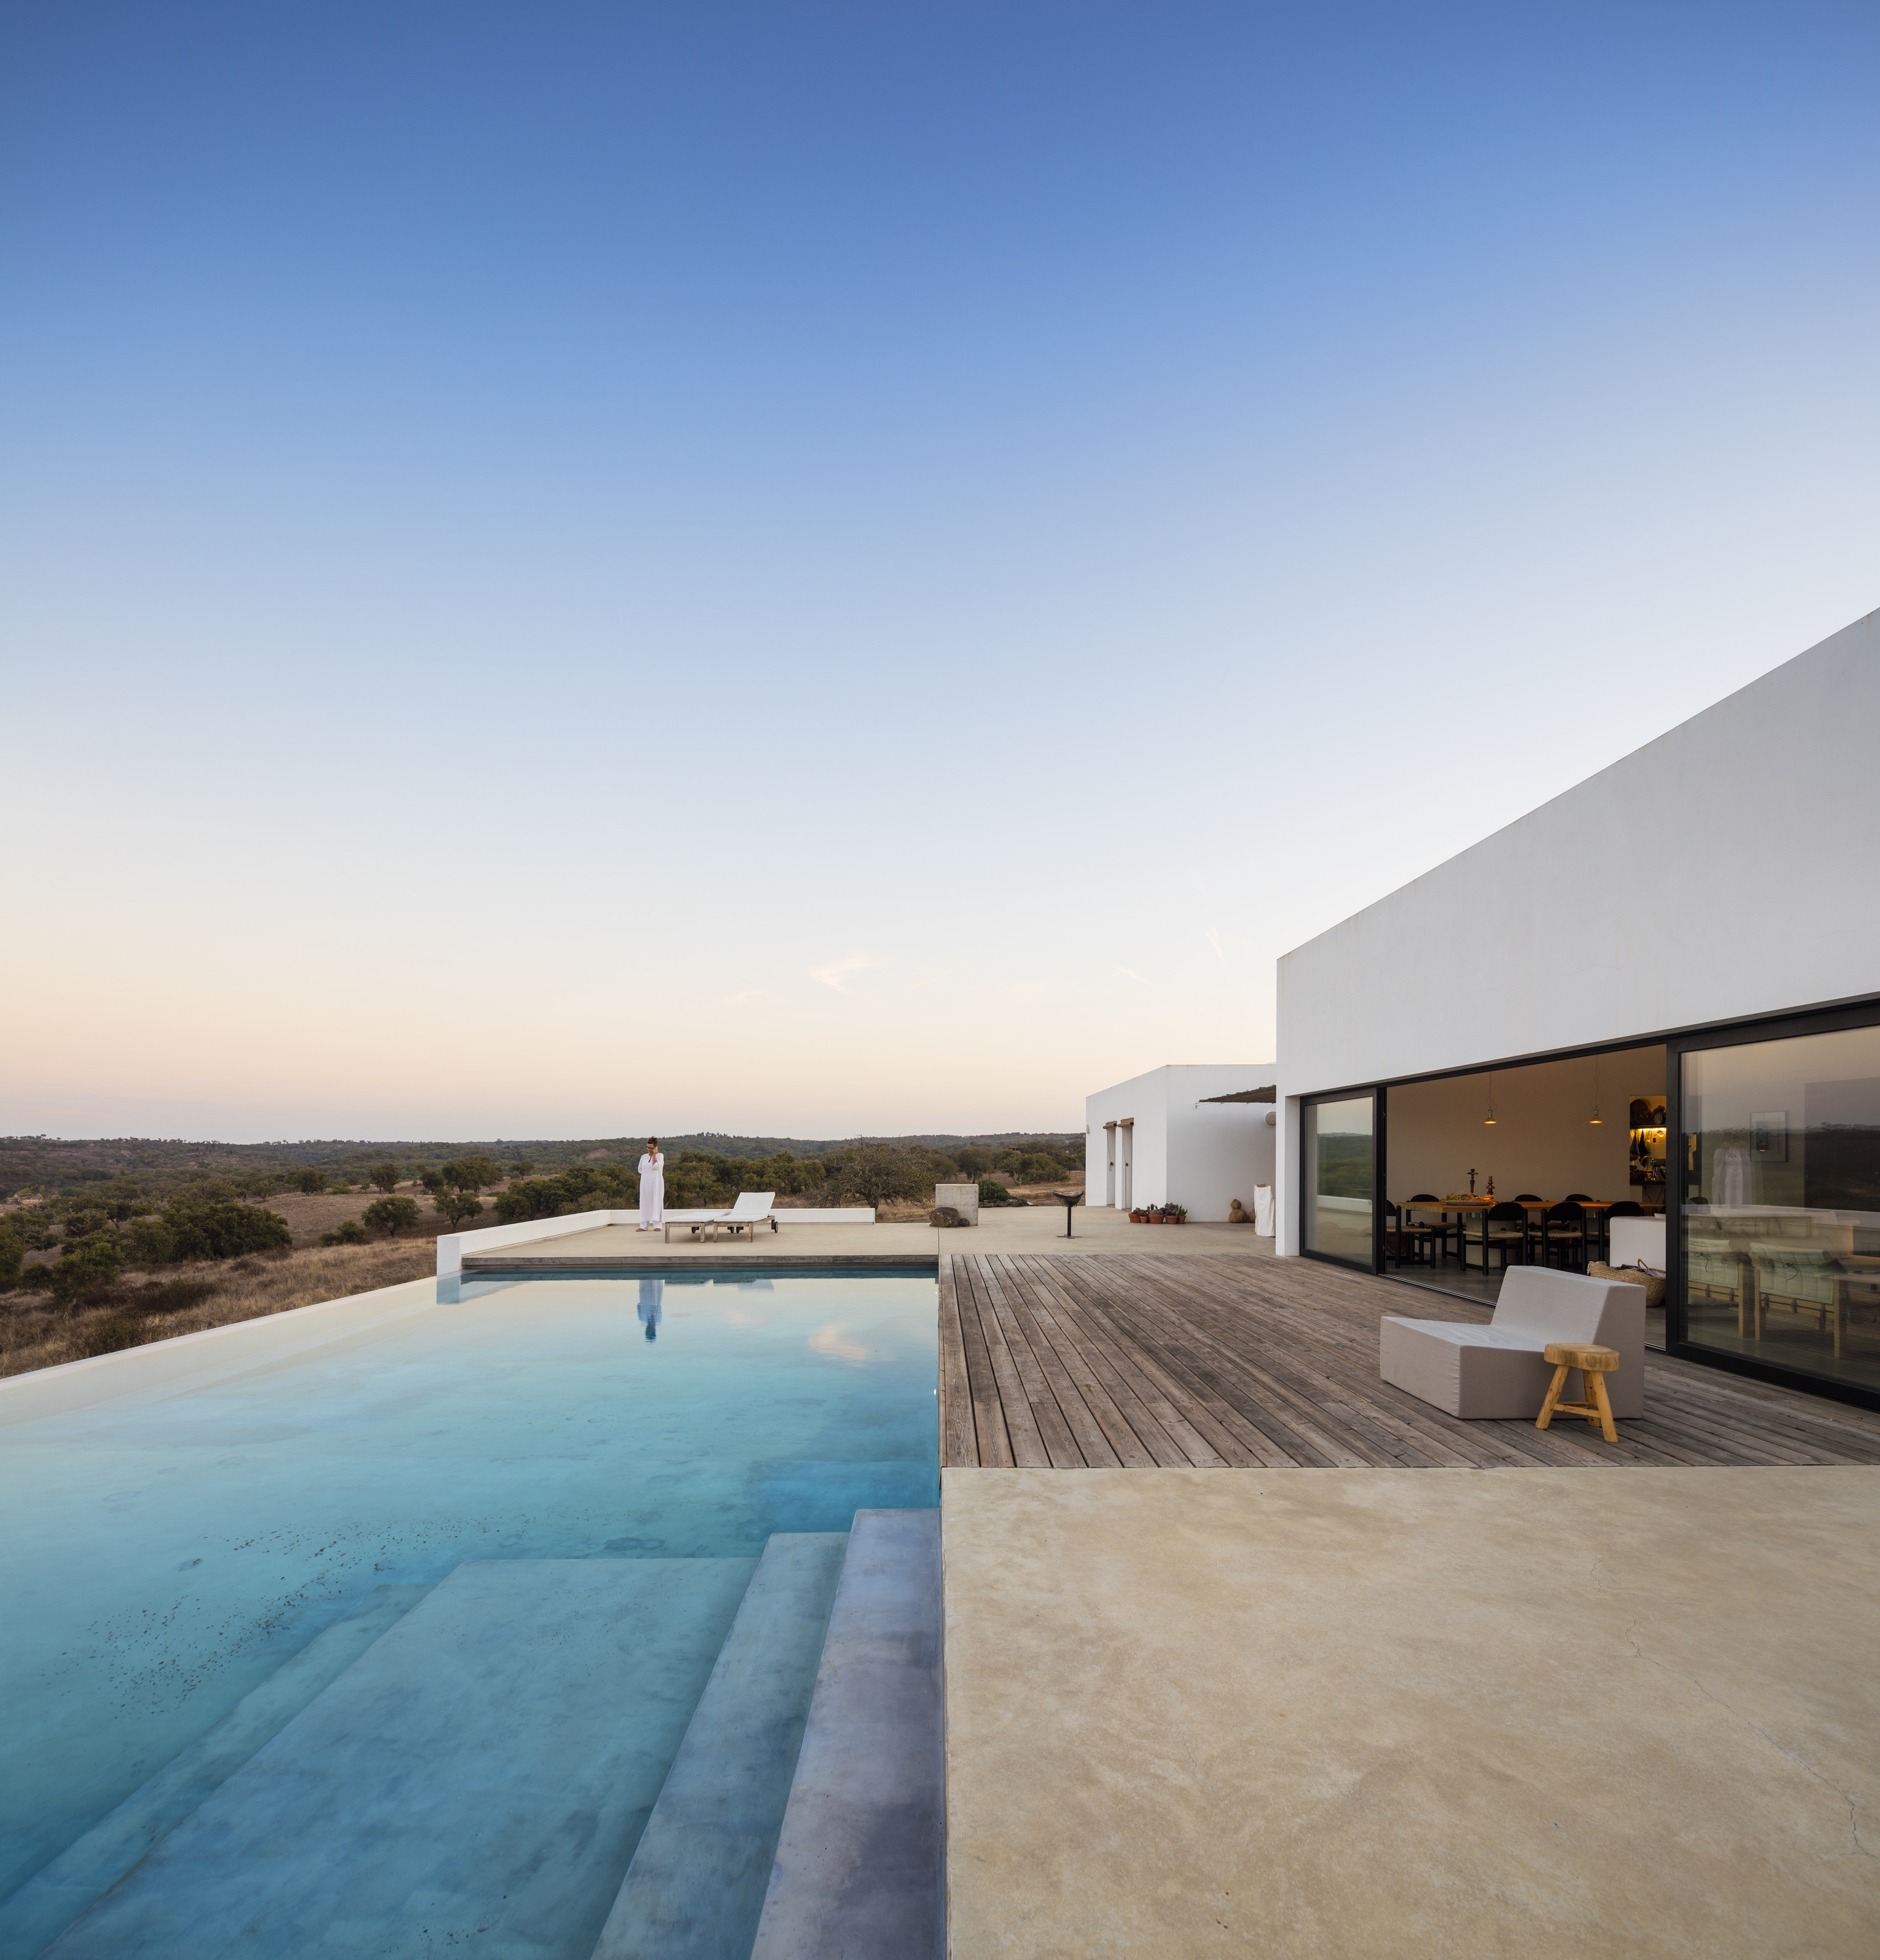 Just Looking at This Gorgeous Home in Portugal Makes Us Desperate for Vacation | Dwell